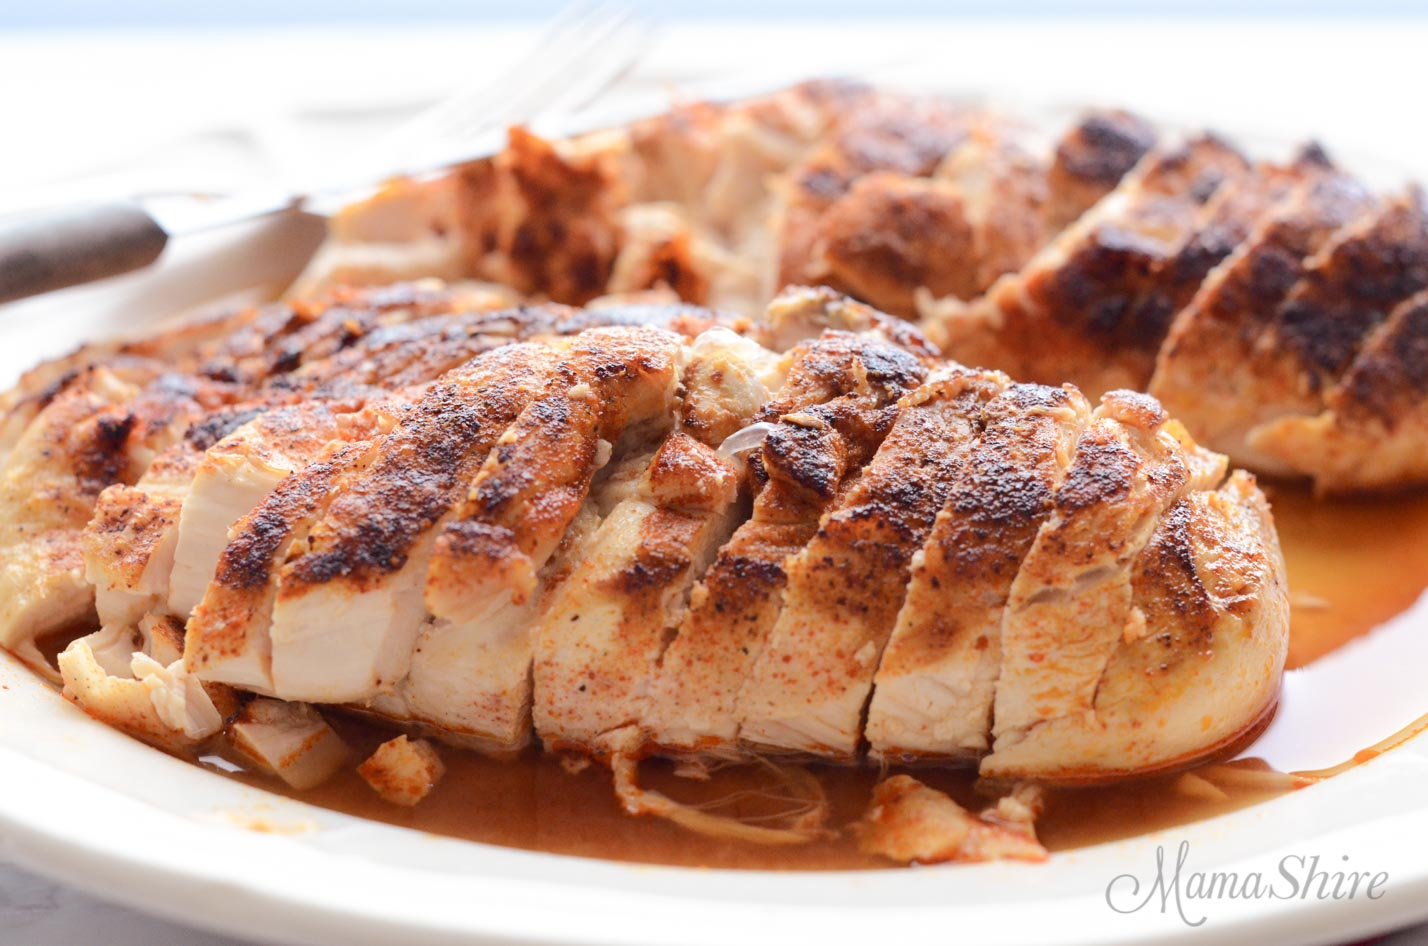 Delicious oven baked chicken breasts that are tender and juicy.